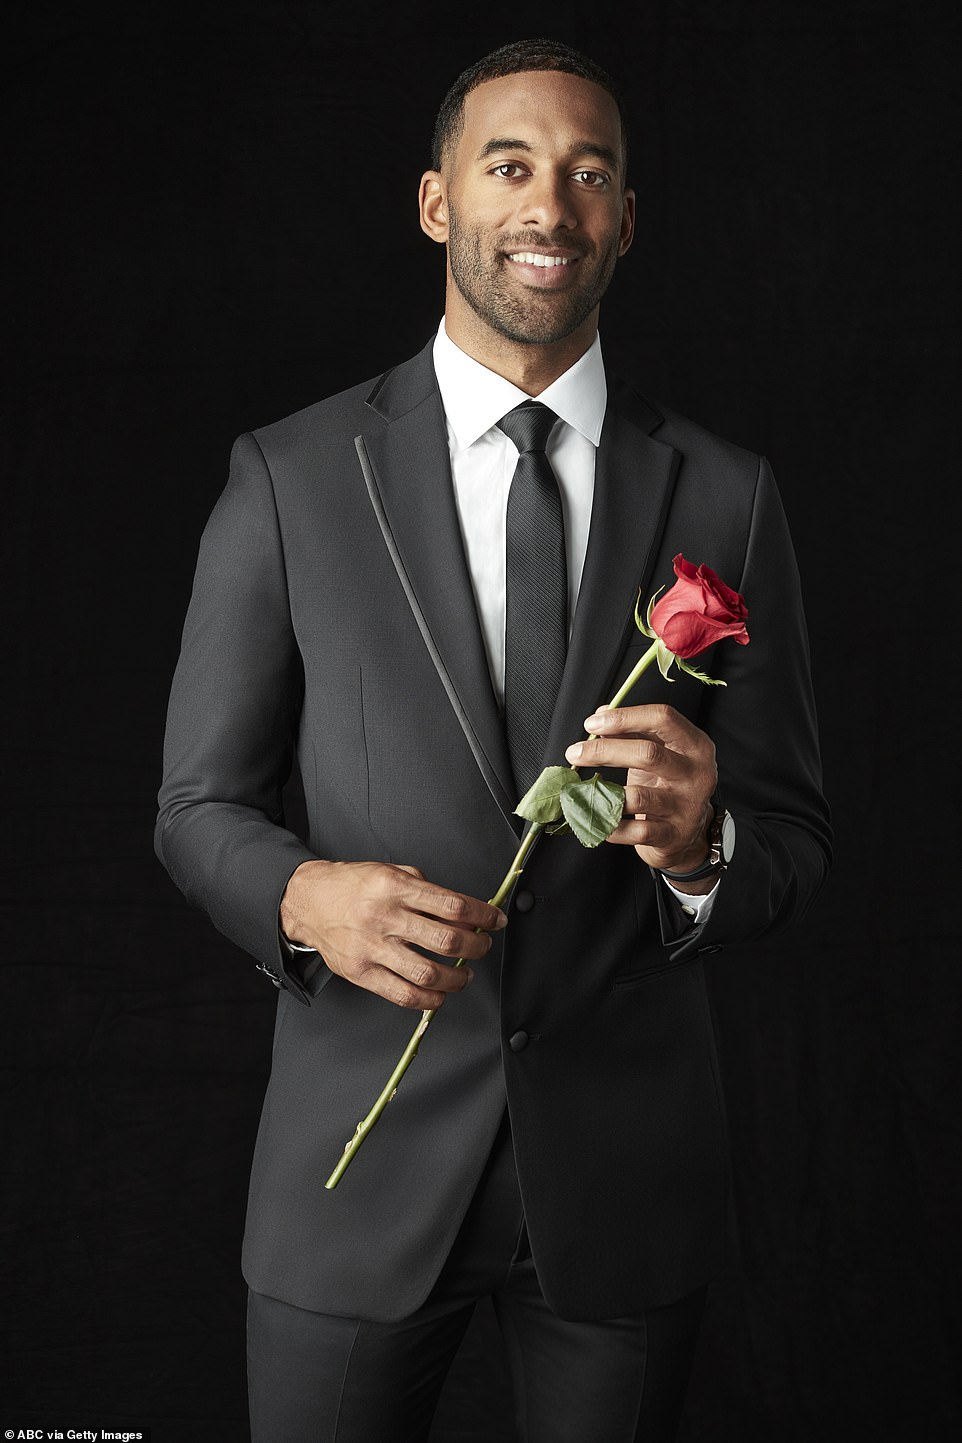 Coming soon: The Bachelor will premiere on ABC 8pm on January 4, 2021